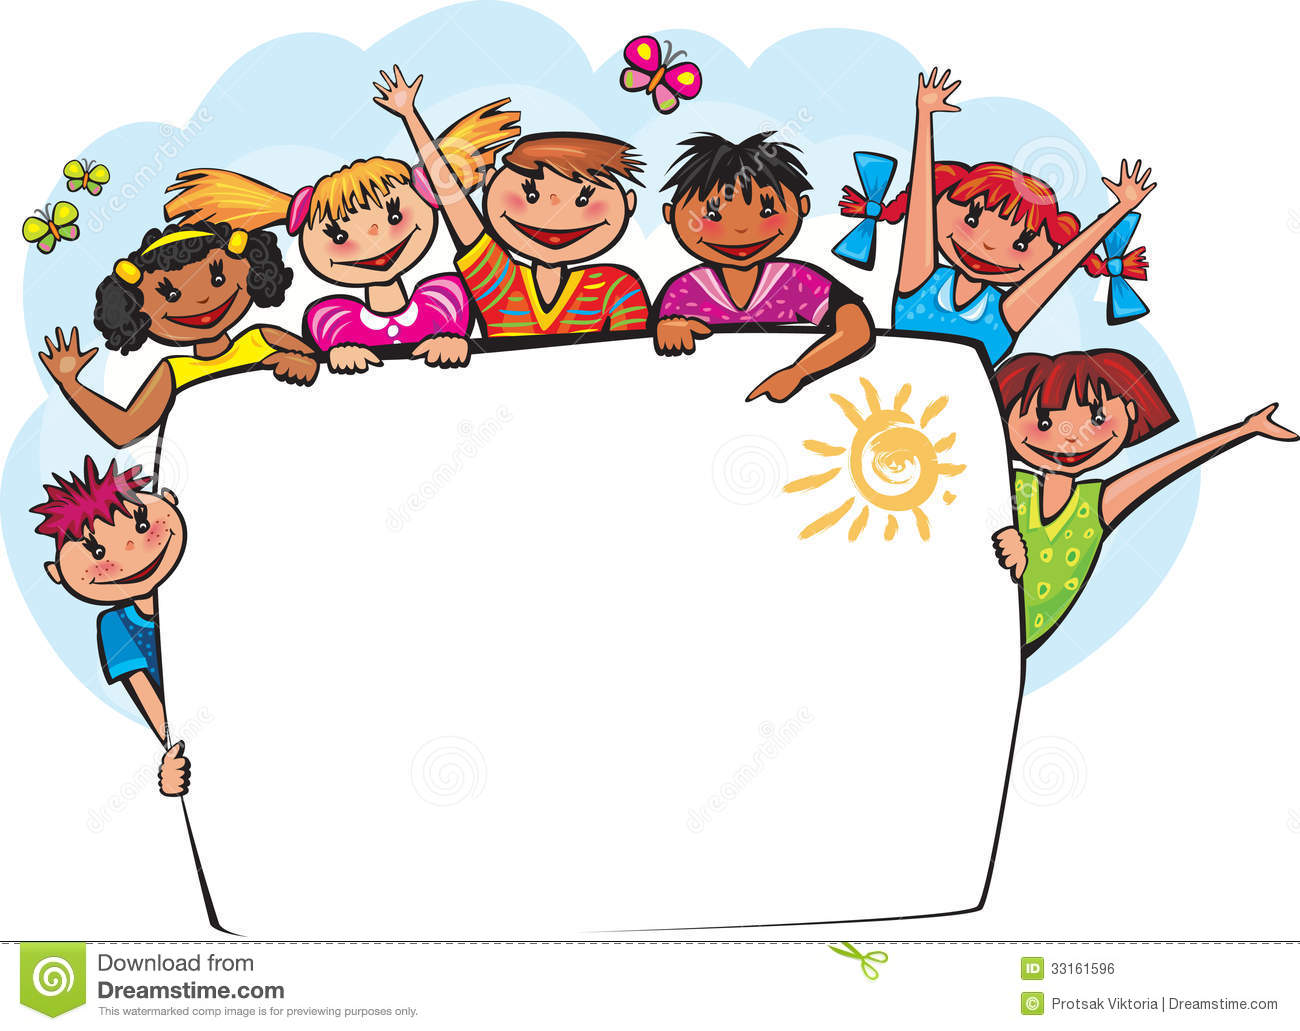 Kids Behind The Banner Royalty Free Stock Image - Image: 33161596Uncle Rico Kyle Orton